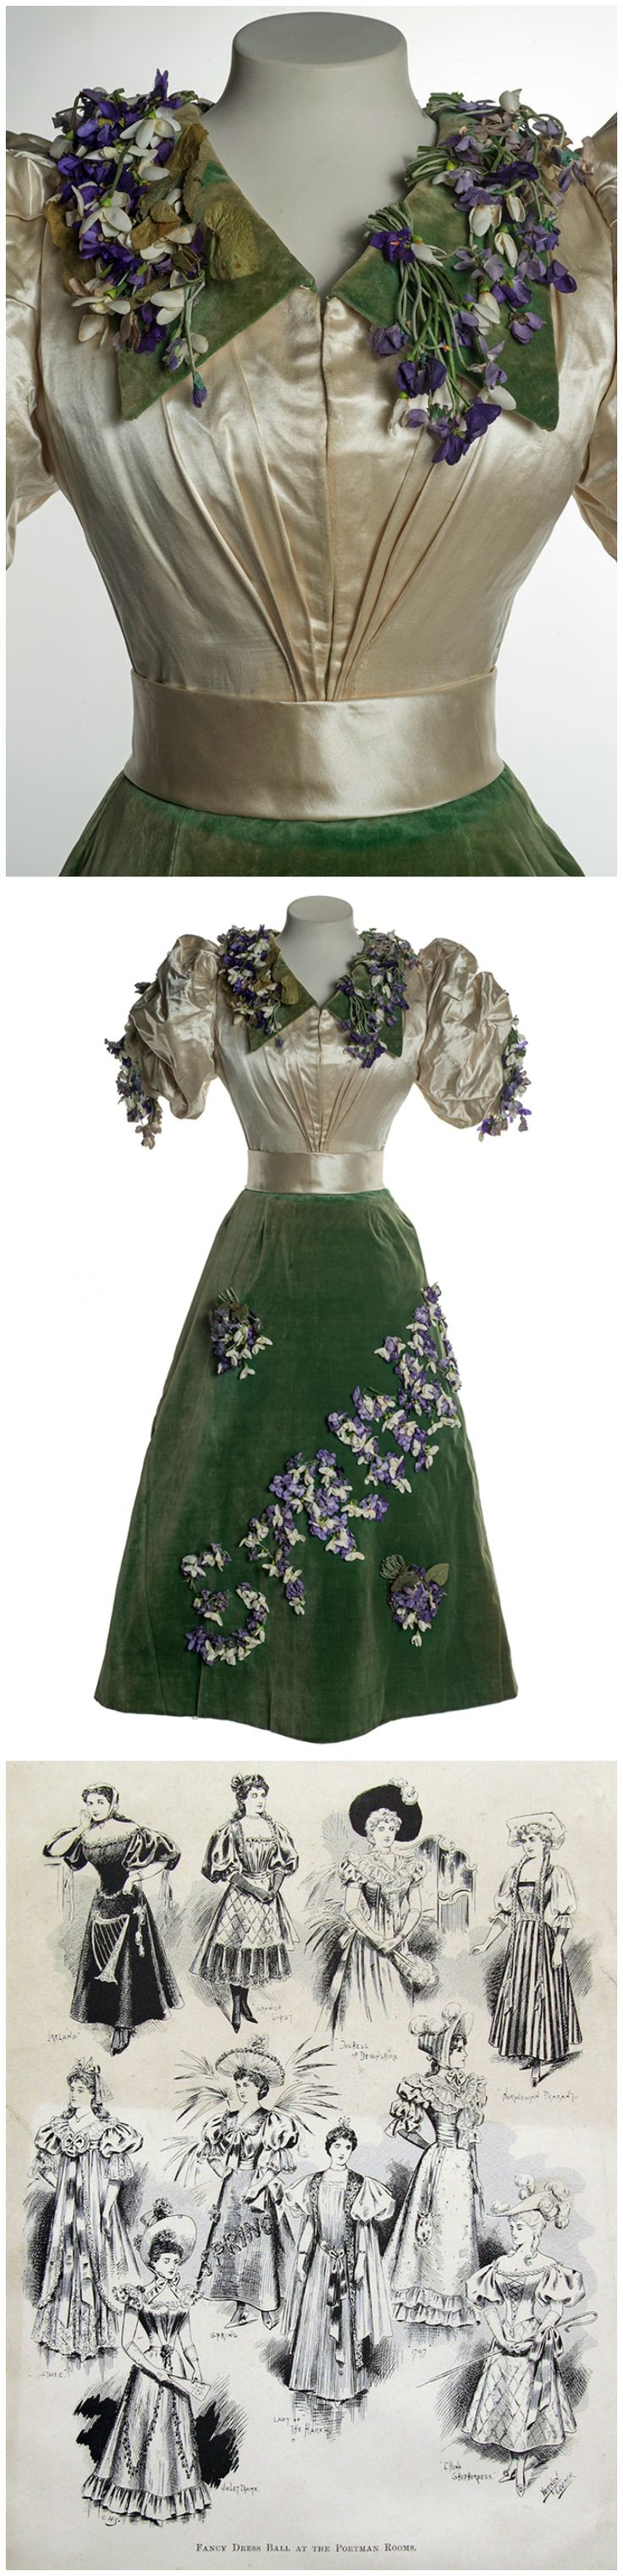 """Fancy dress ensemble depicting Spring, from the Museum of London. The outfit, decorated with sprays of artificial crocus, is said to have been worn to a fancy dress ball at the Portman Rooms around 1893, but the large puffed sleeves seem to point to the mid-1890s. An (undated) illustration of ten outfits worn to a """"Fancy Dress Ball at the Portman Rooms"""" includes this particular ensemble. For more information, see: http://blog.museumoflondon.org.uk/dress-spring/"""